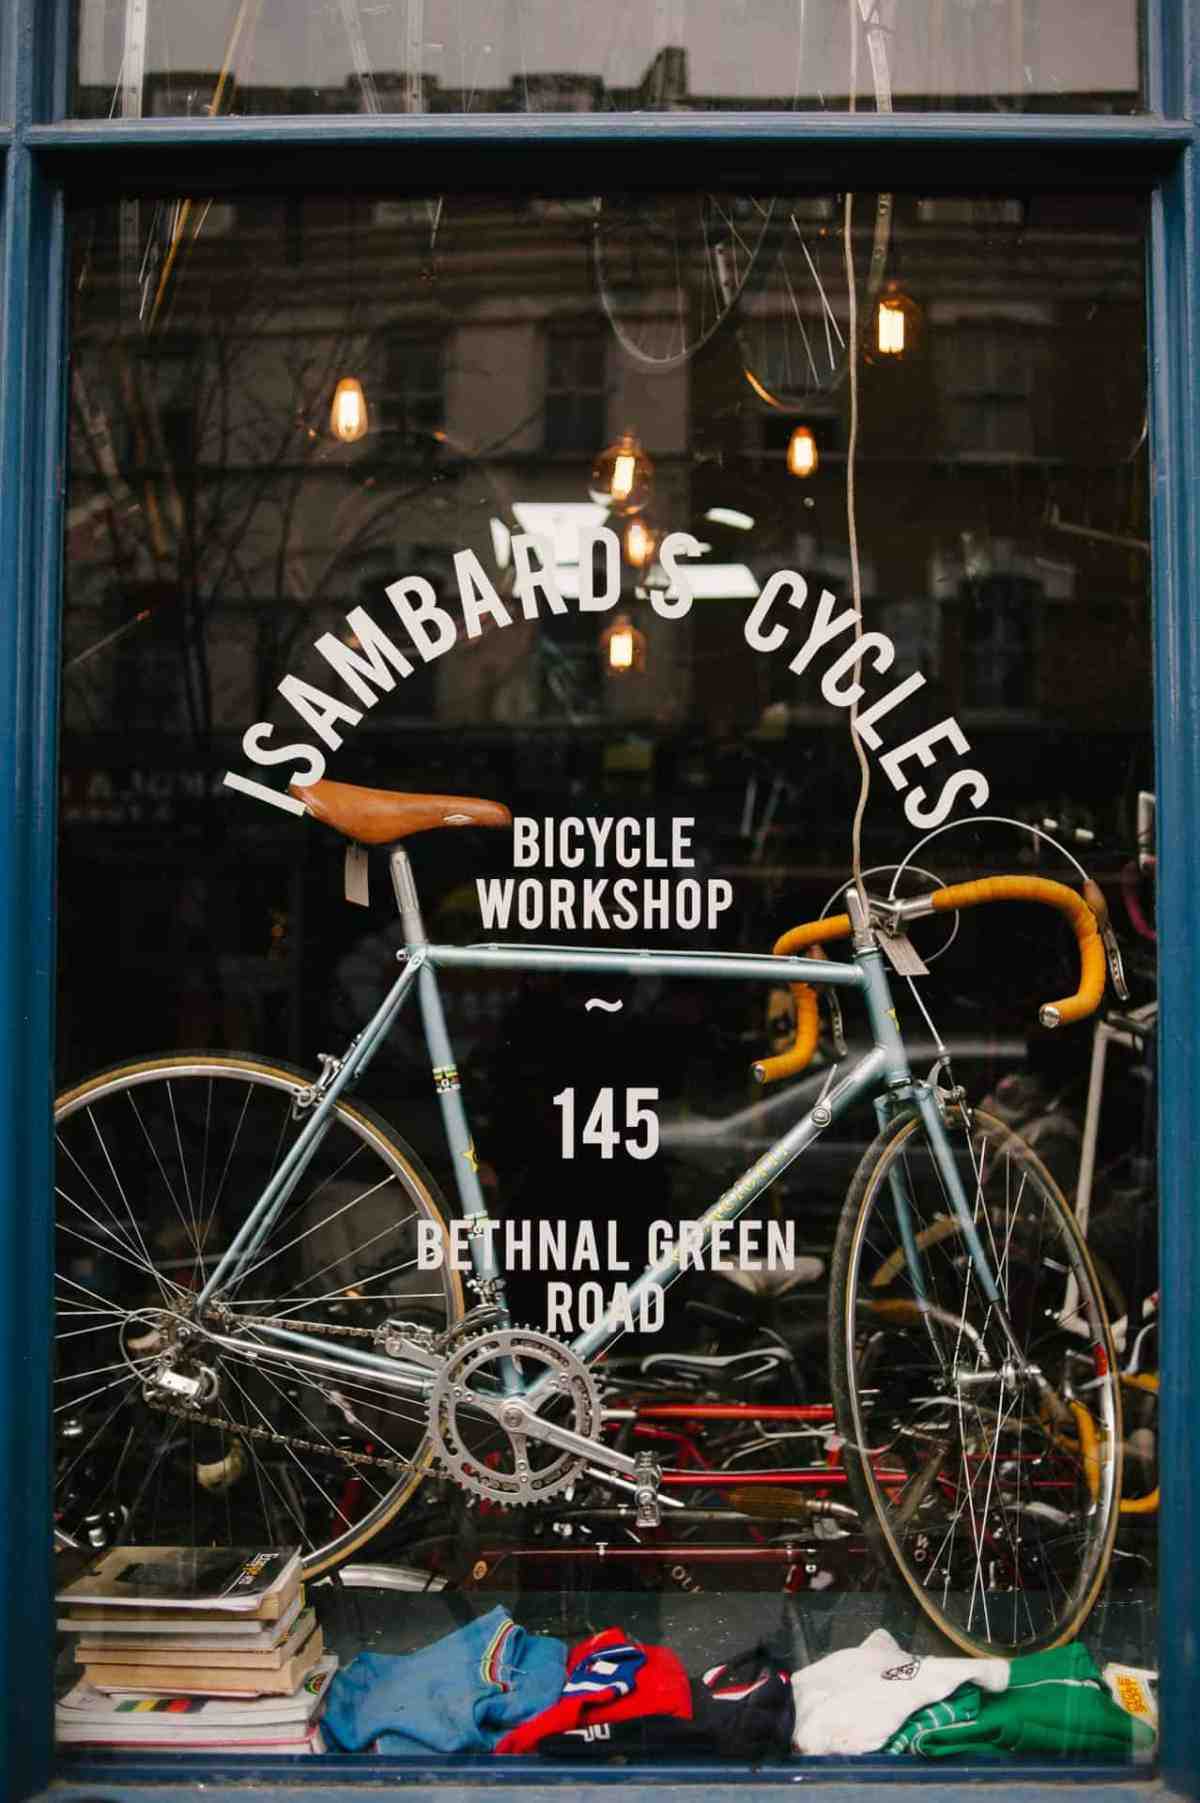 Isambard Cycles